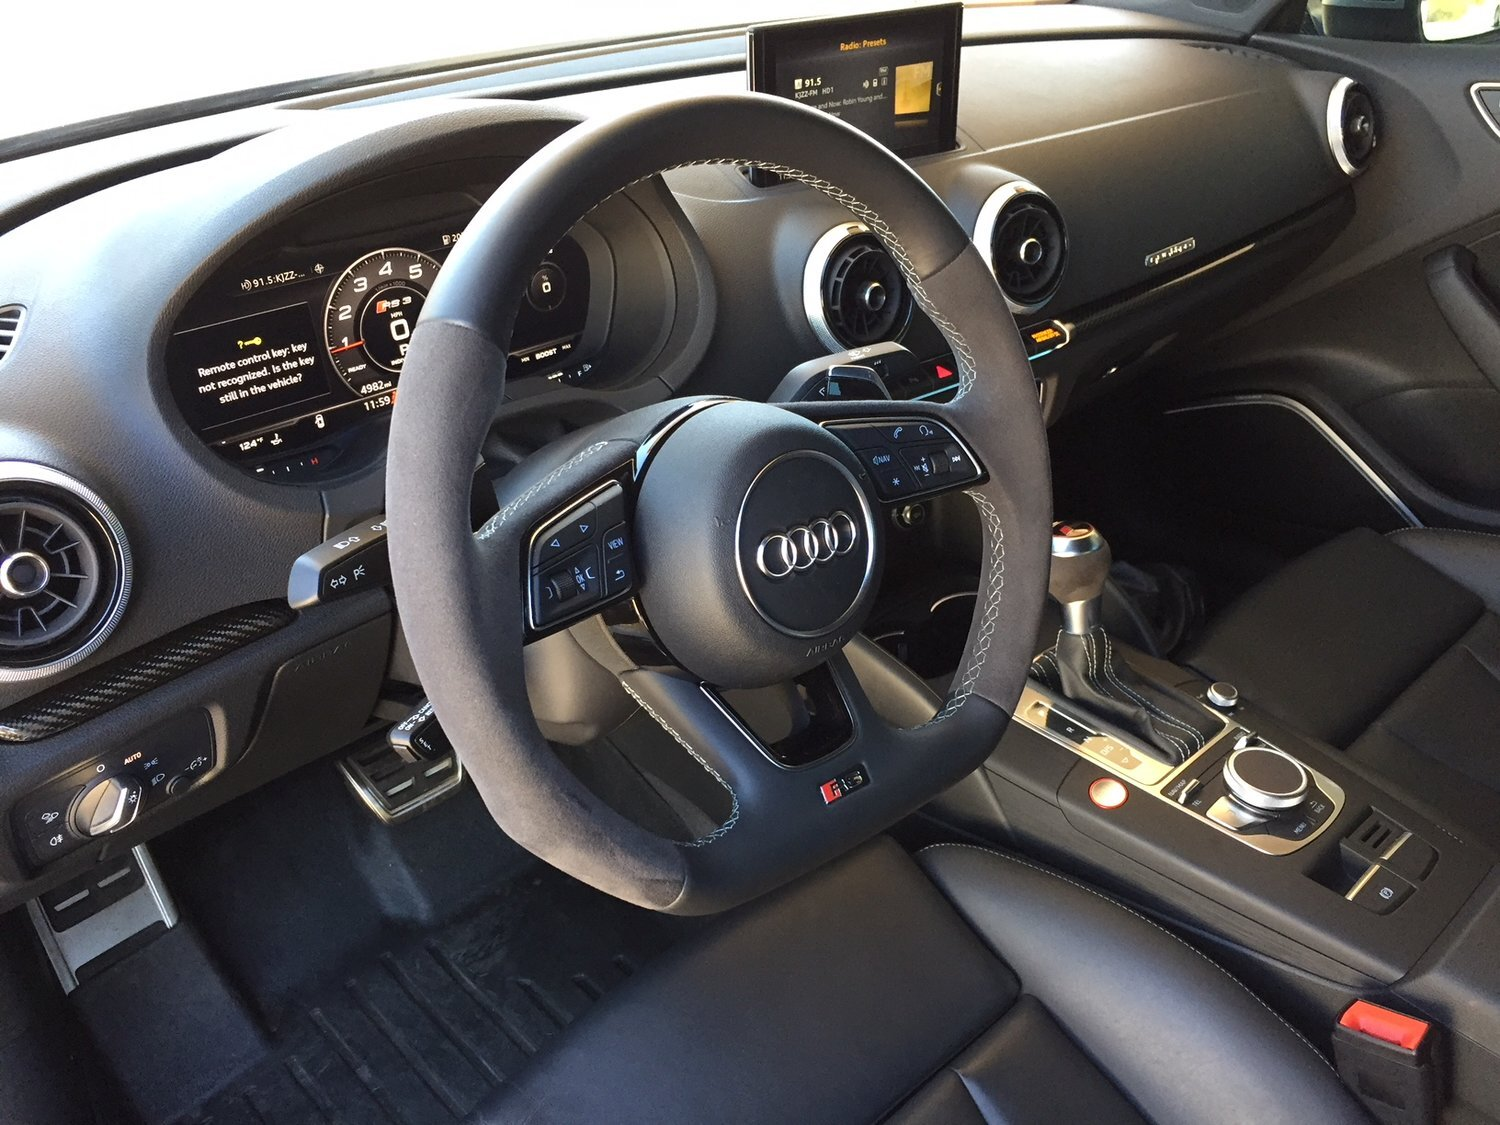 I did love that flat bottom steering wheel, and if you're going to have a screen on the dash, it's nice that this one could be lowered (though late 2018's and on stay up when the car is one due to safety regulations).